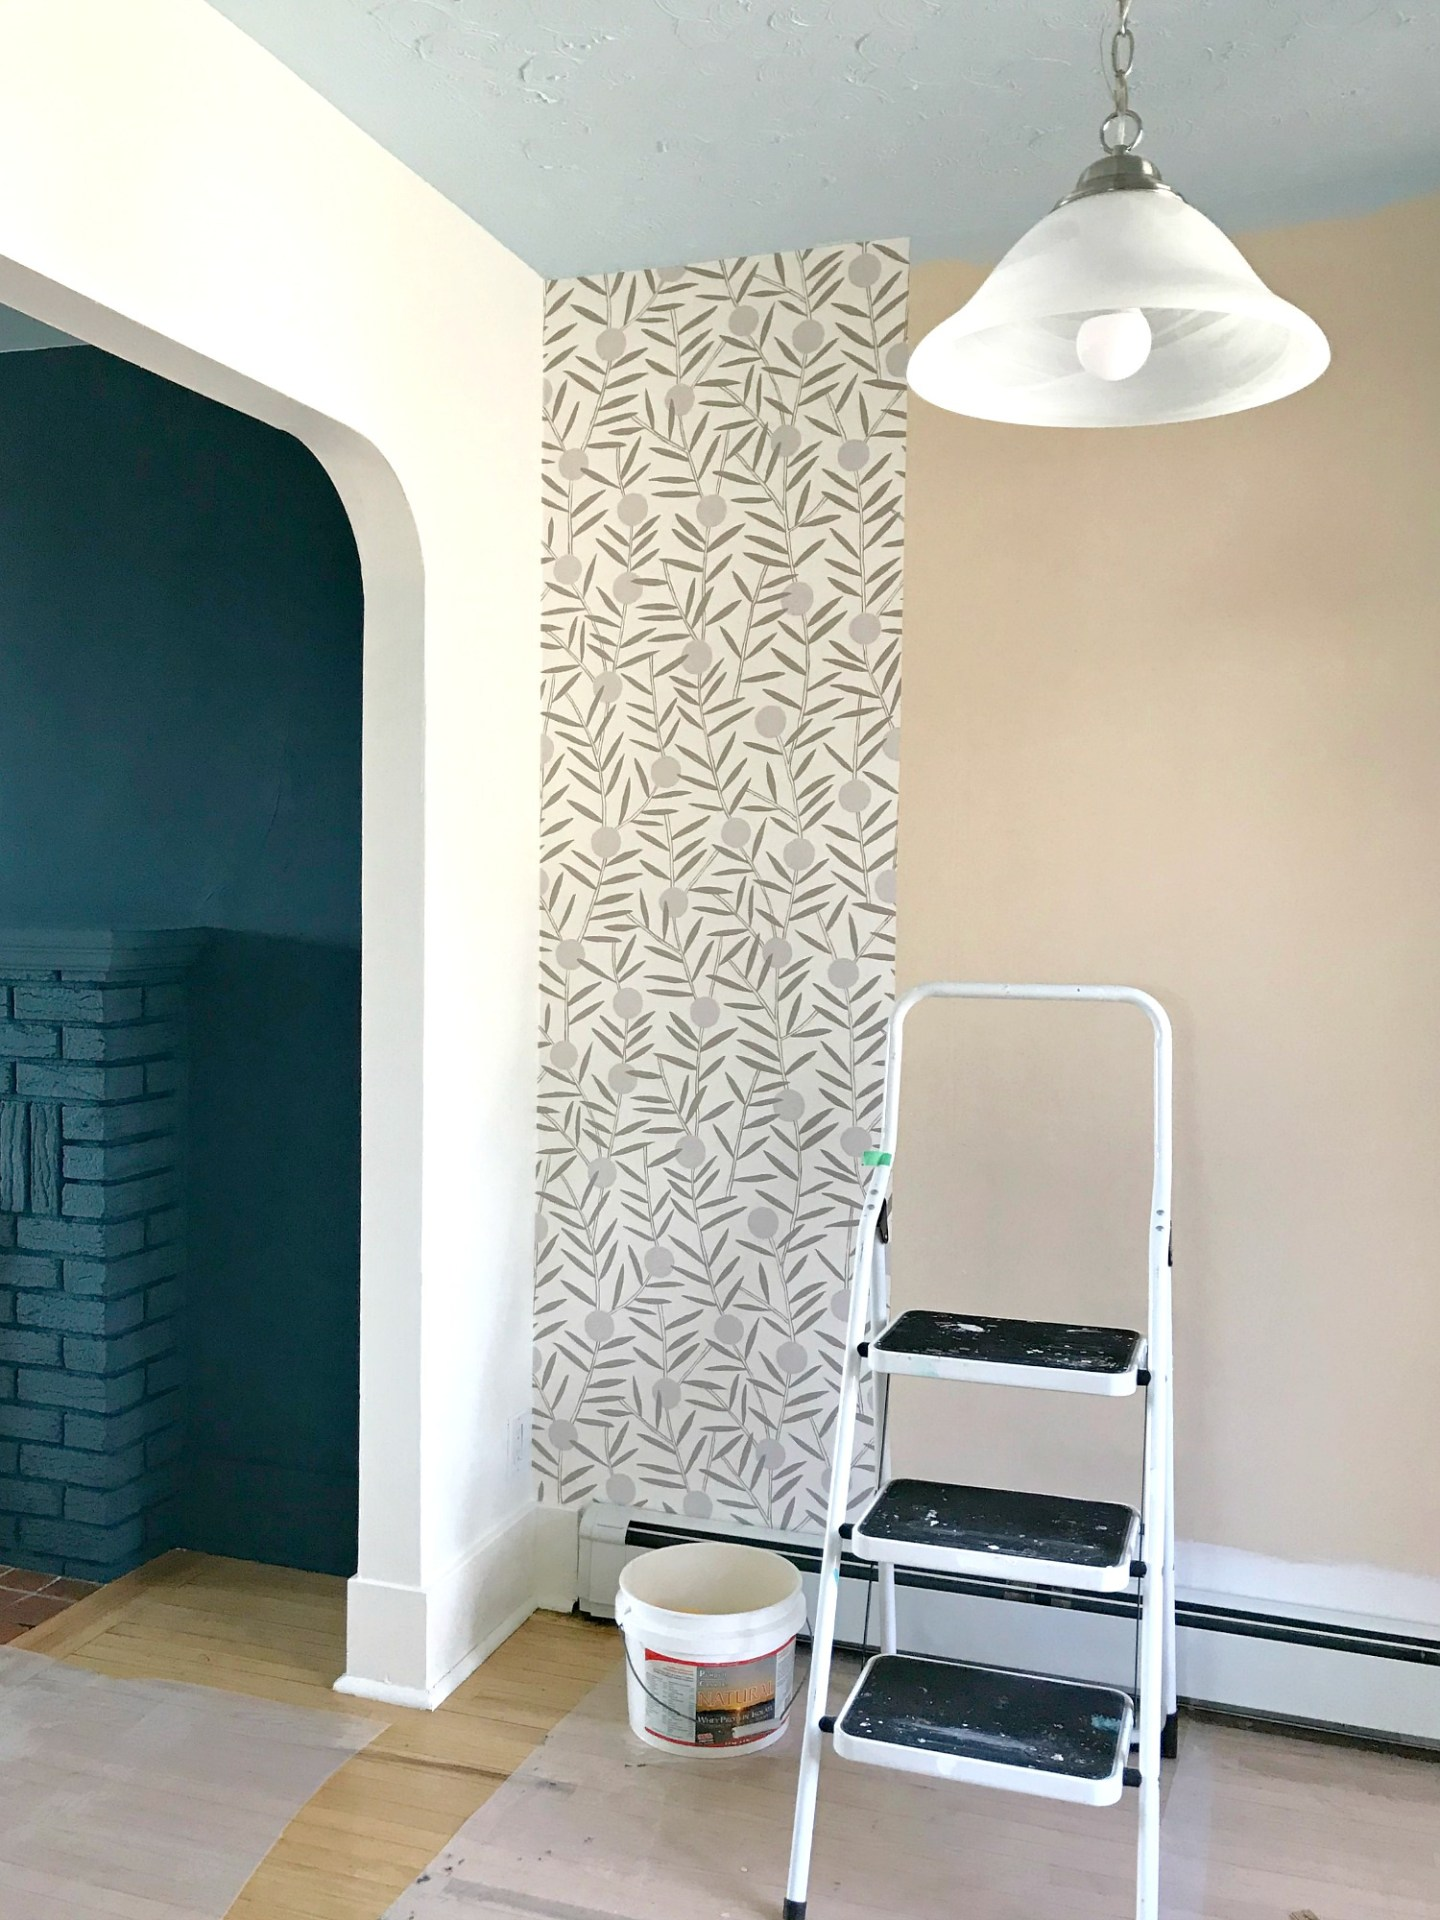 How to Hang Non-Pasted Wallpaper